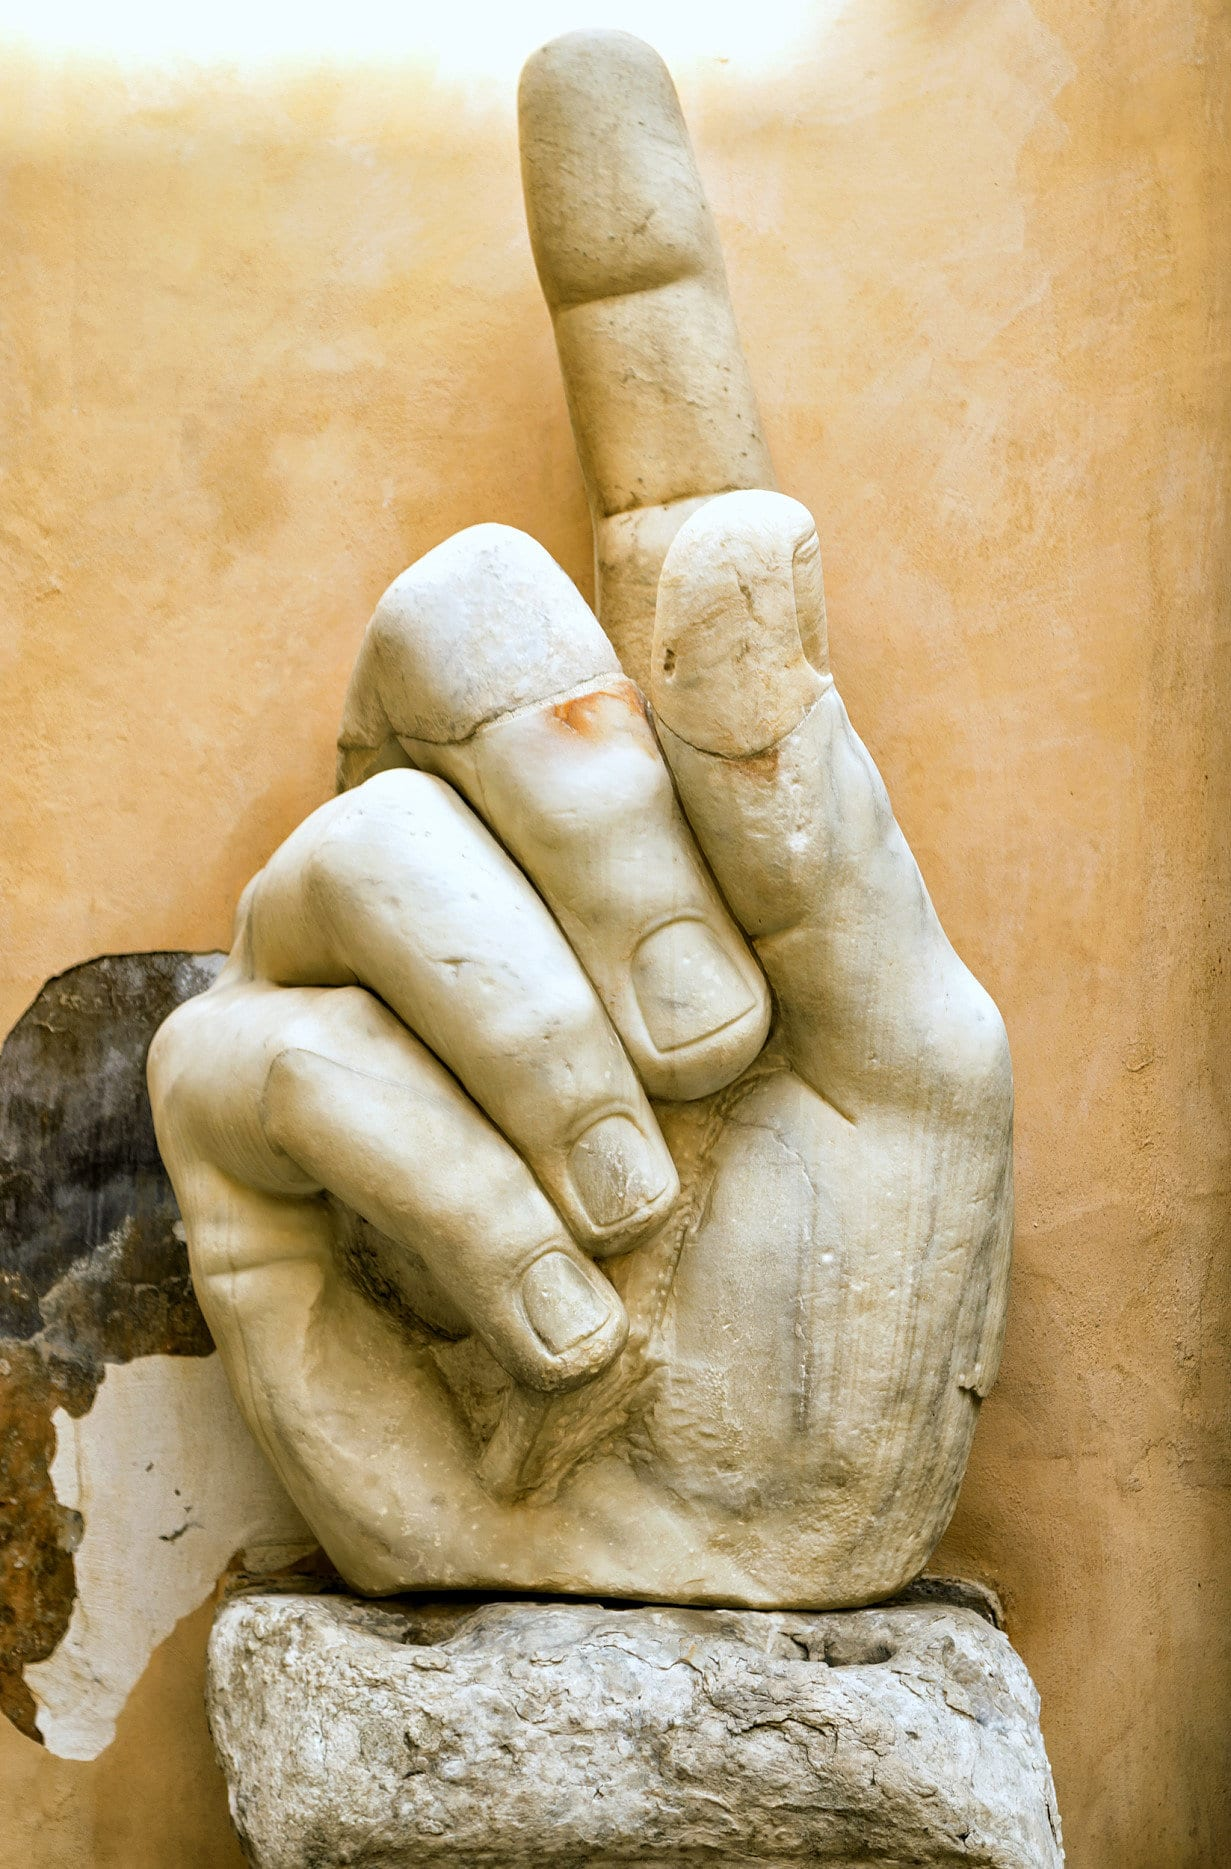 Fragment of a giant statue of Constantine the Great at the Capitoline Hill. Stone hand with raised index finger of Constantine's colossus in Capitoline museum outdoor.